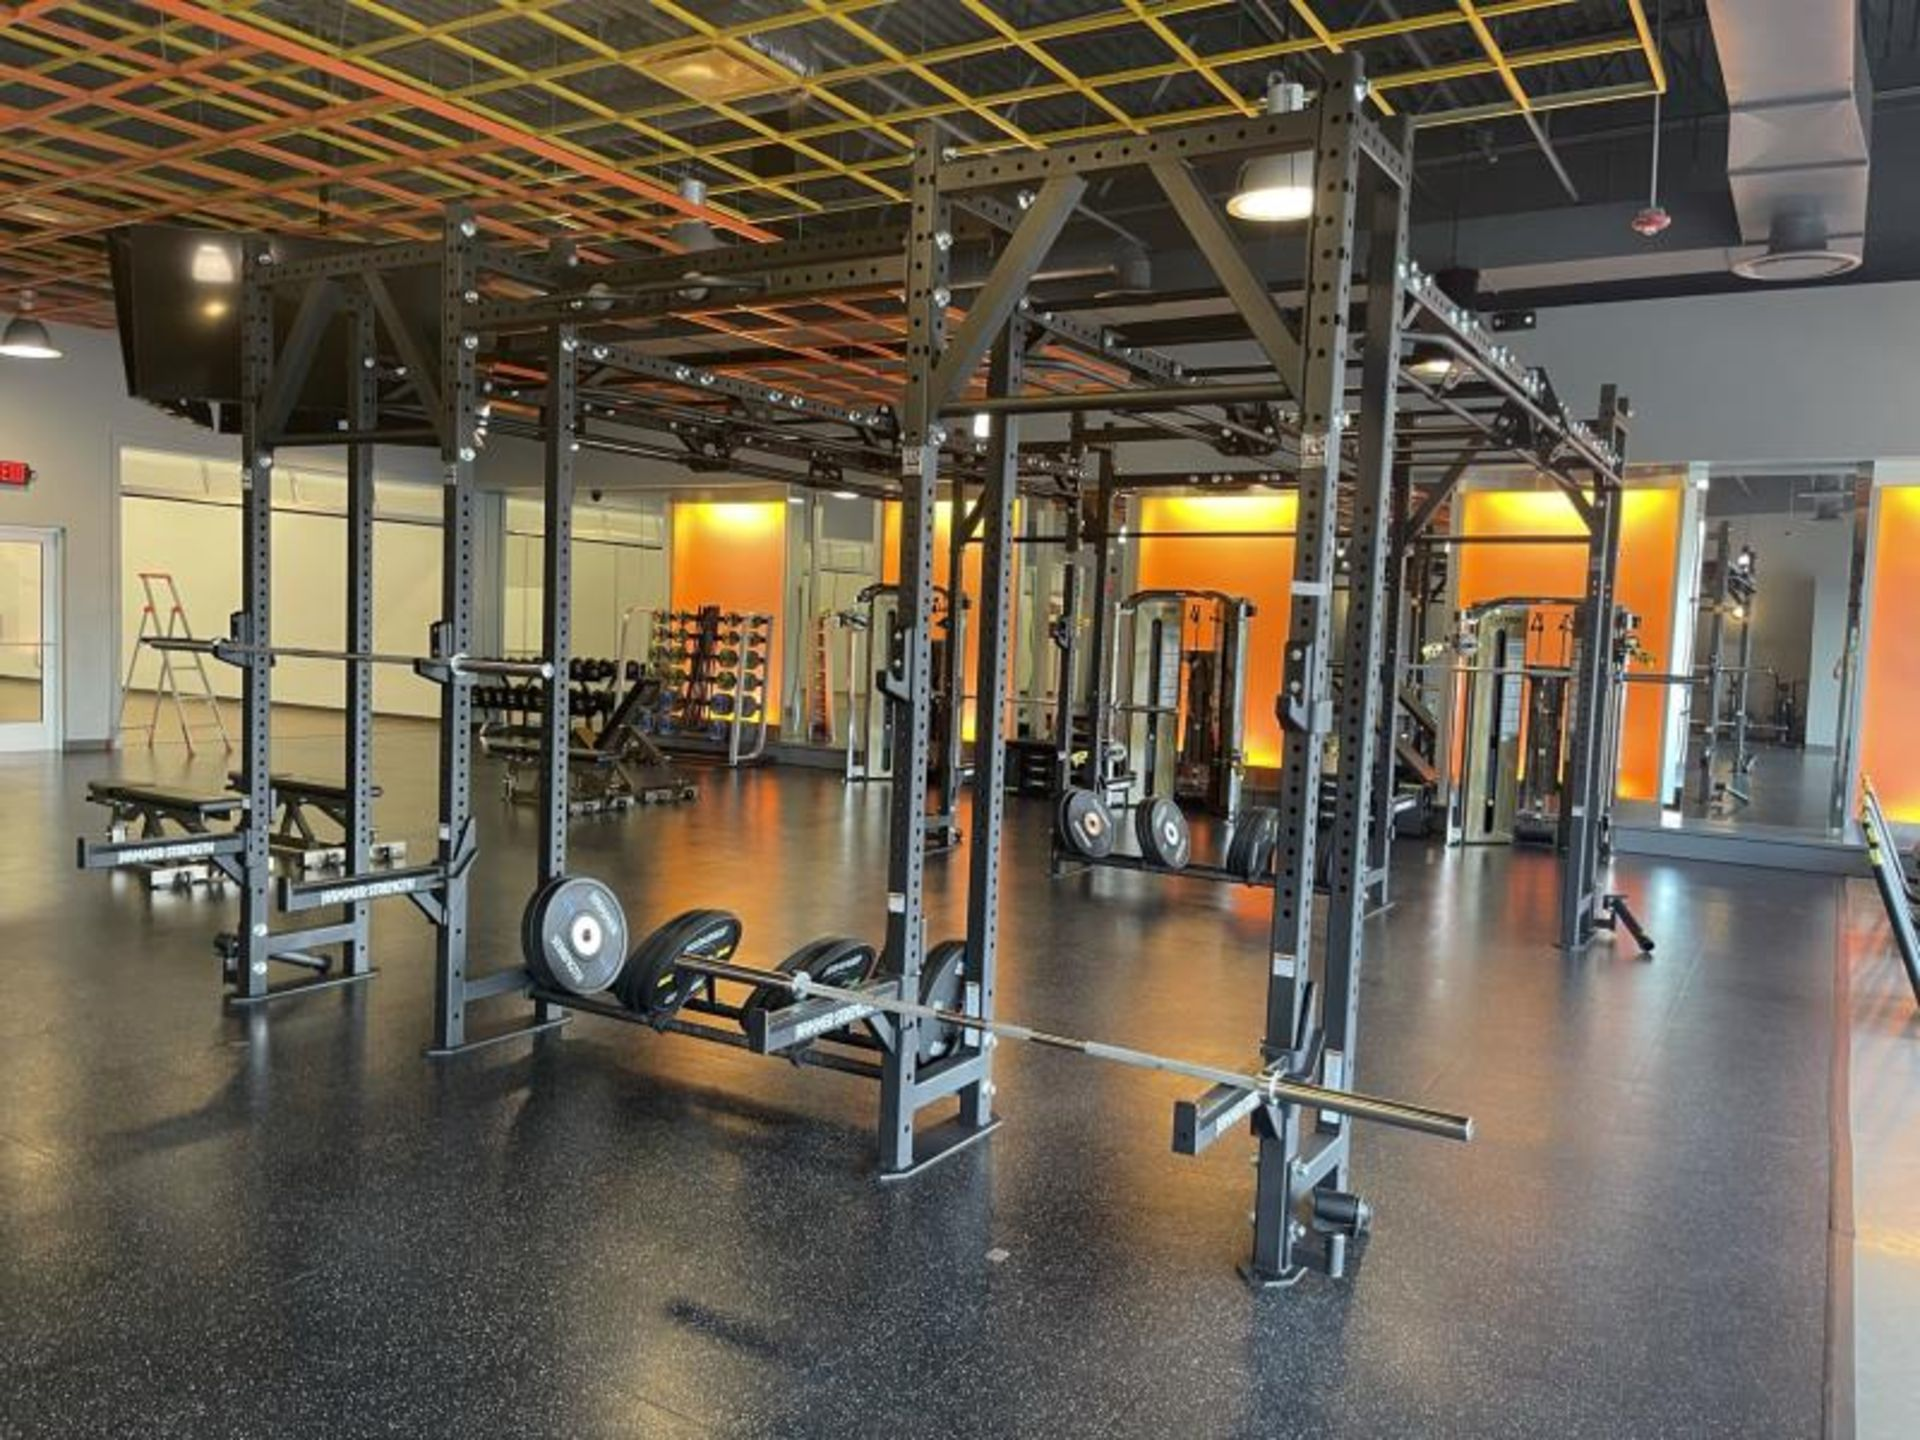 Hammer Strength Multi Station Cage with Hammer Strength Weighted Plates, 4 Bars - Image 11 of 11